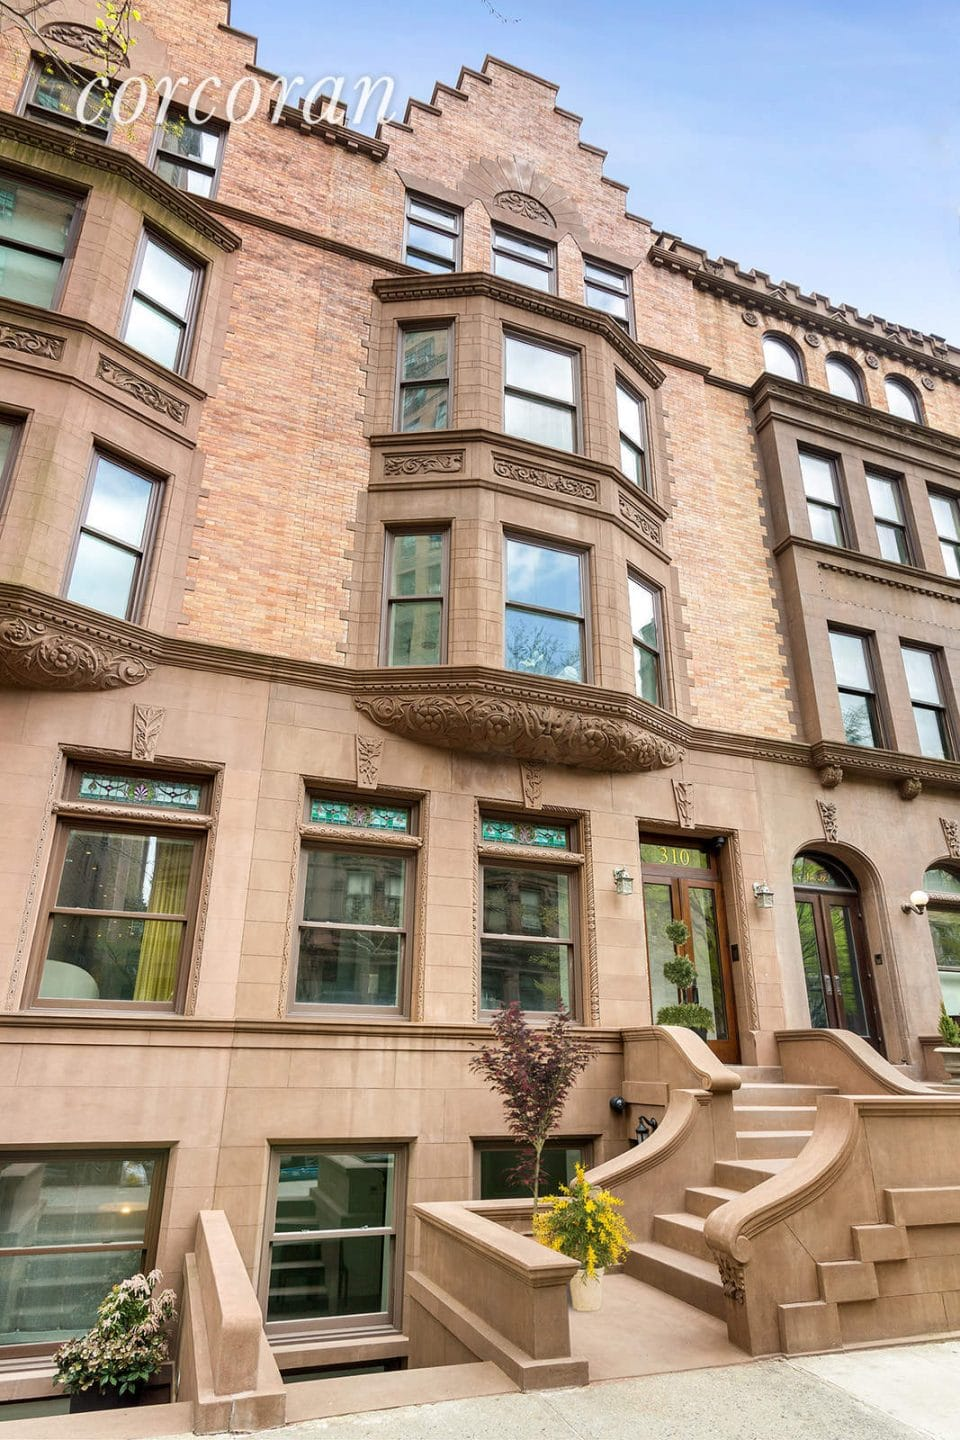 310 West 88th Street, New York